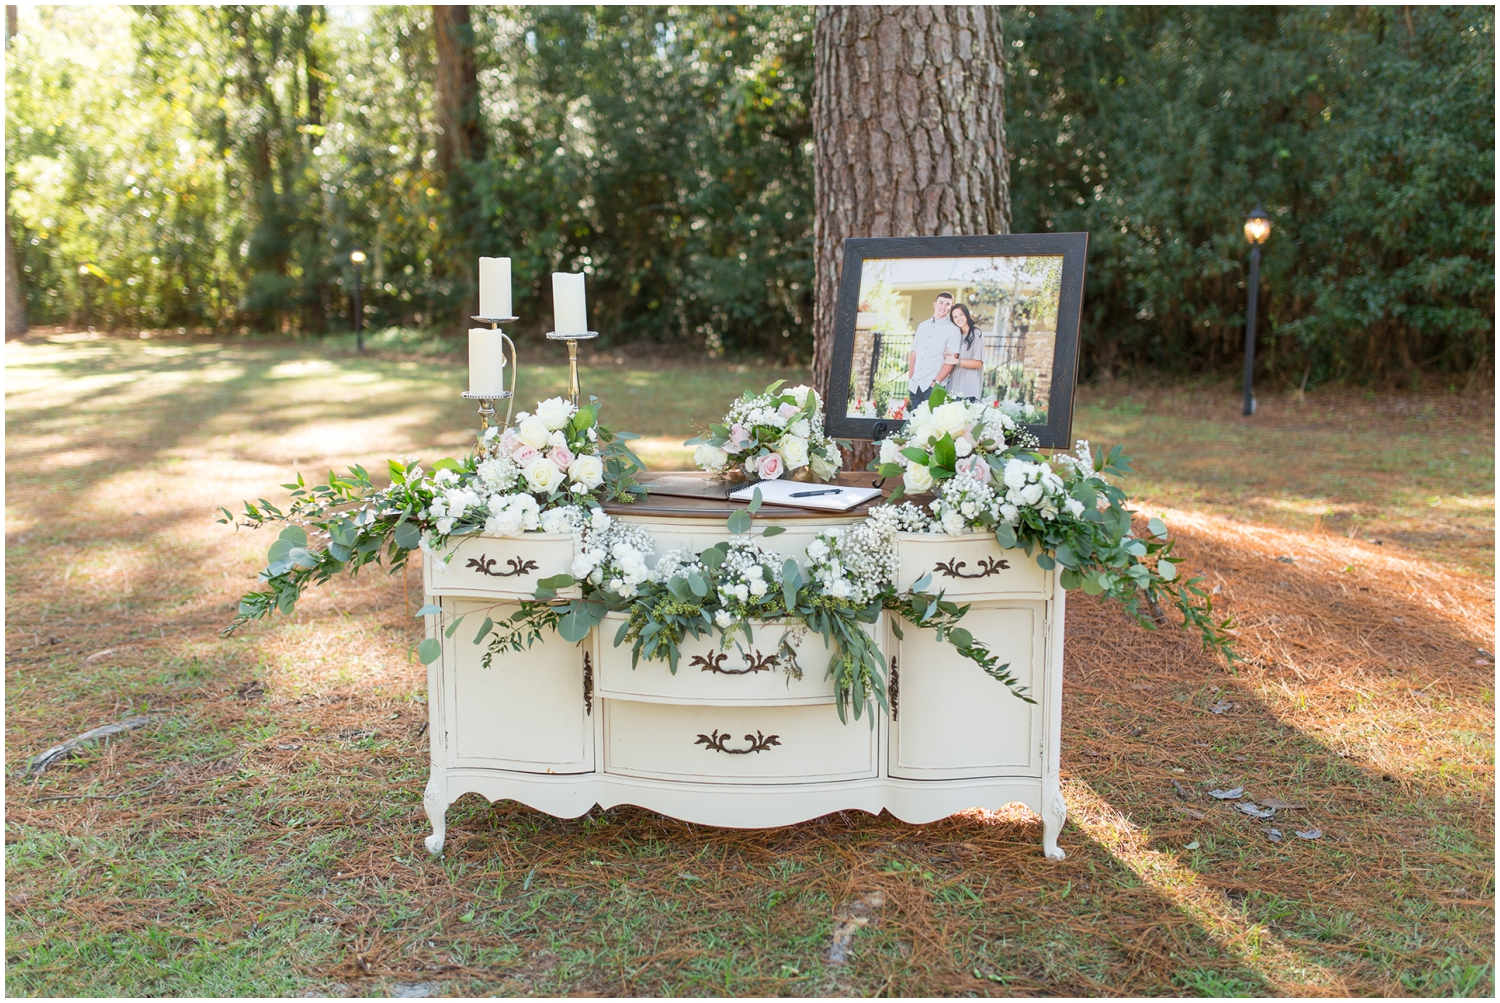 Wedding Decor Inspiration for Outdoor